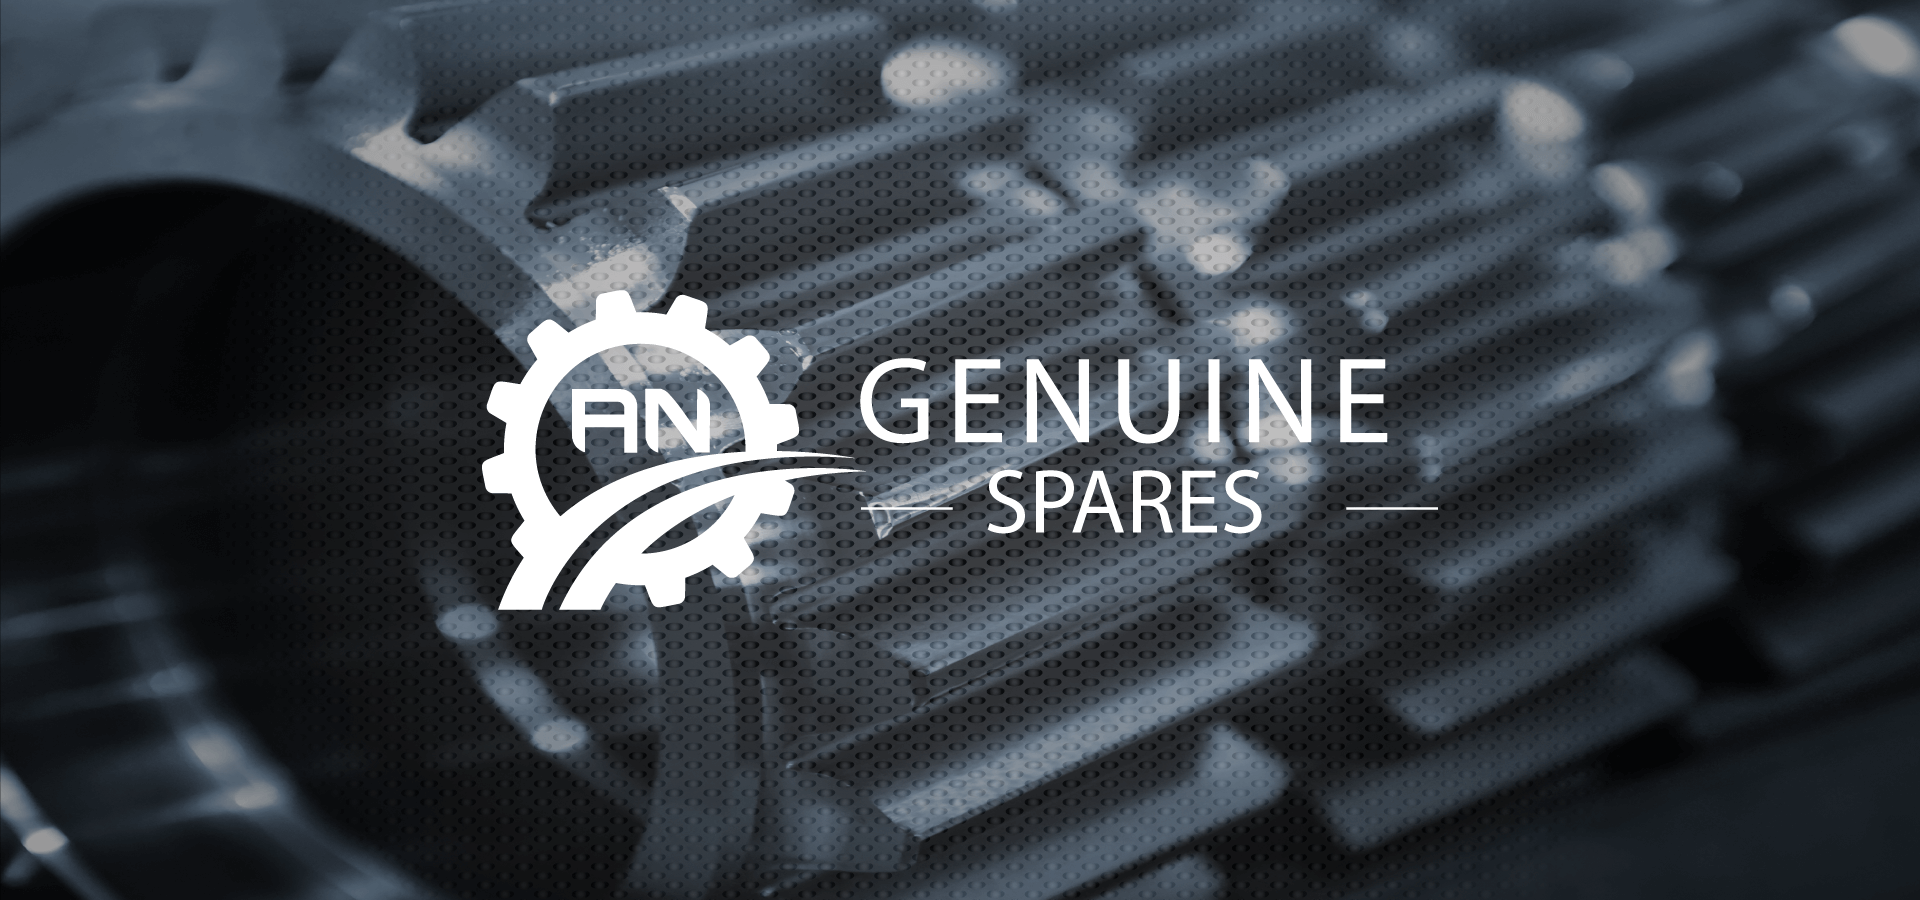 AN Genuine Spares Logo Design